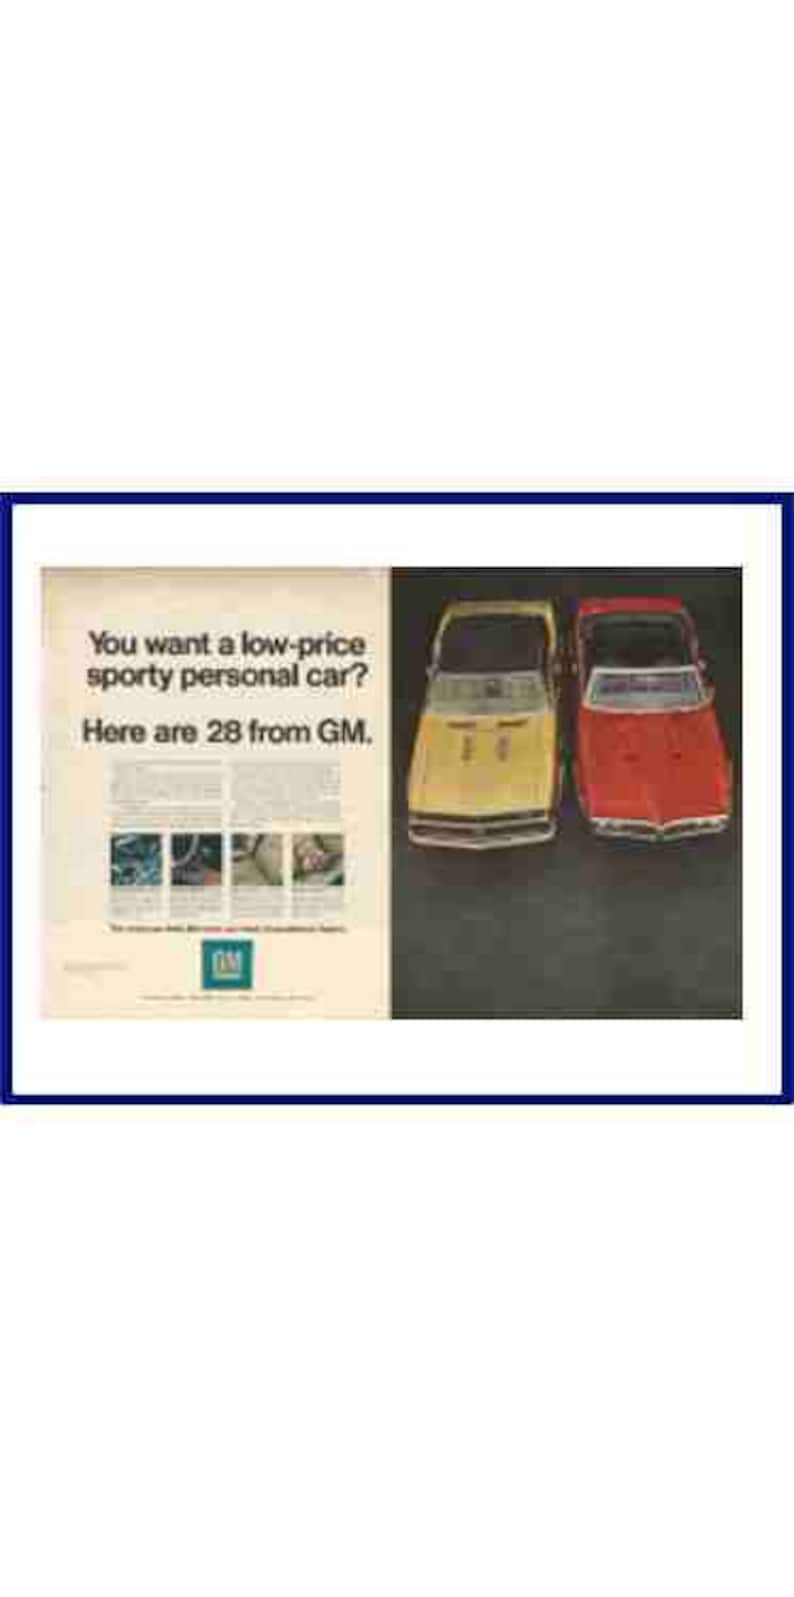 GENERAL MOTORS Automobiles Original 1969 Vintage Extra Large Color Print Ad  You Want A Low-Price Sporty Personal Car Her Are 28 From GM